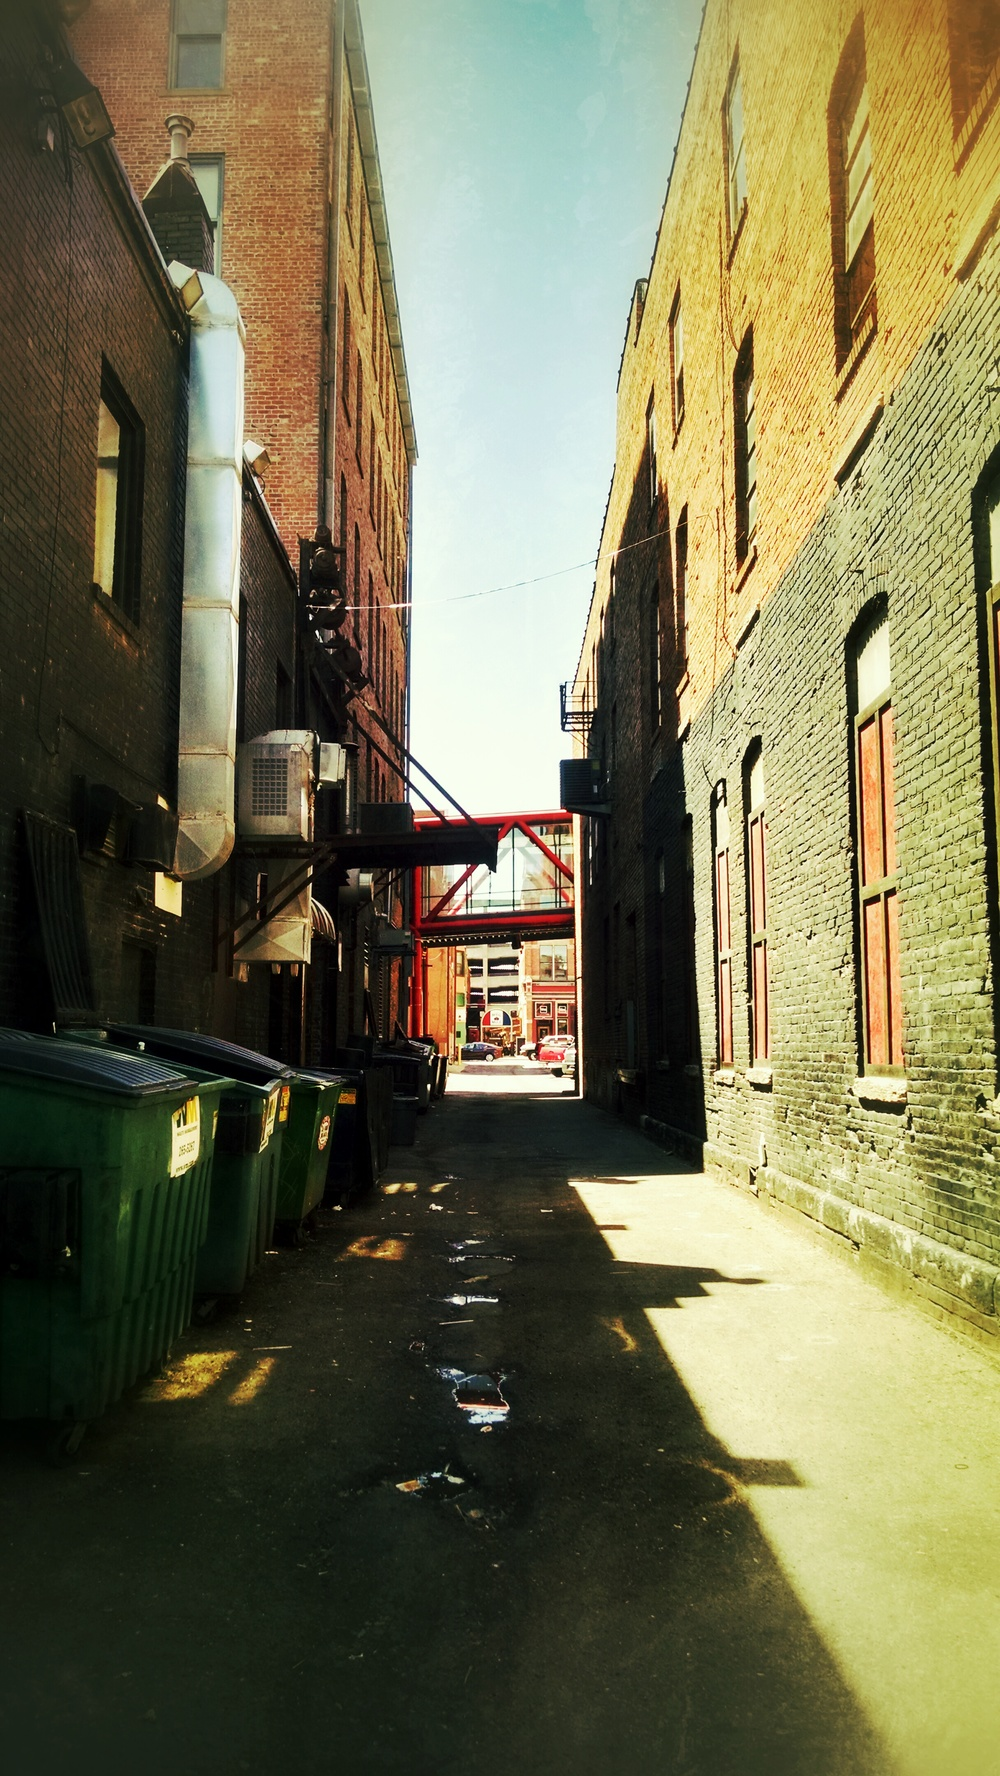 Alleyway in Des Moines